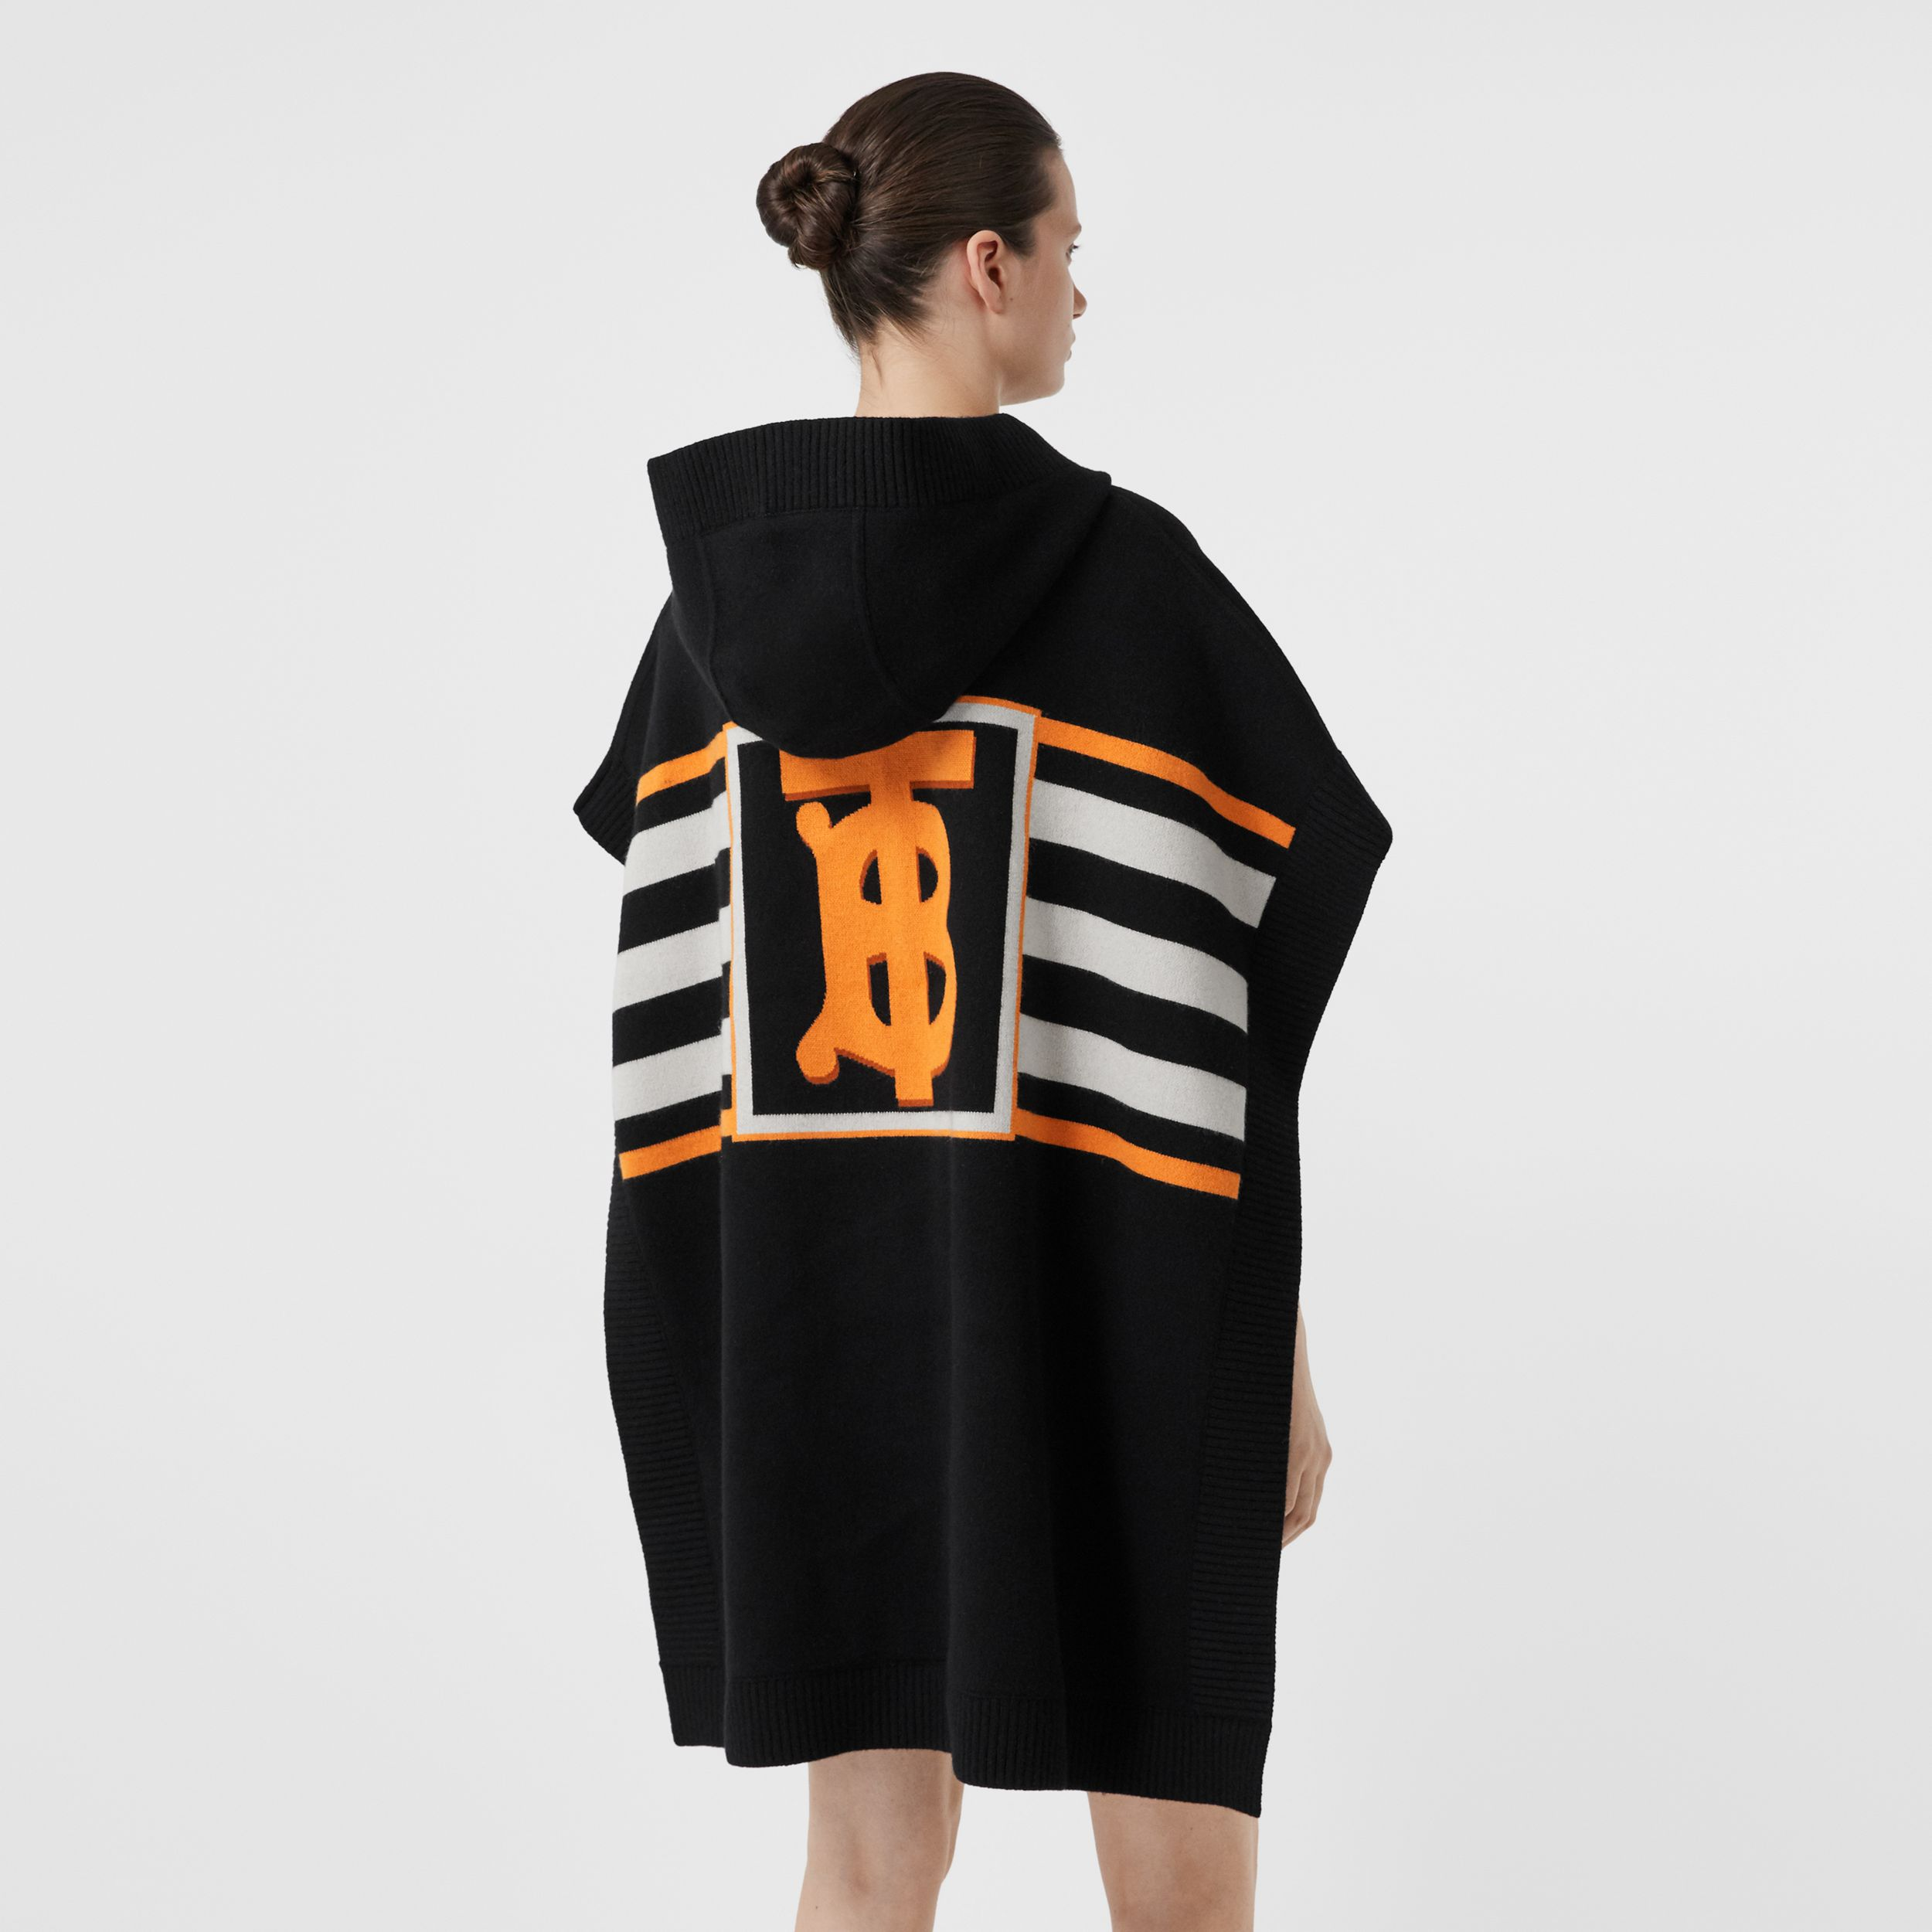 Monogram Motif Intarsia Wool Cashmere Blend Cape in Black - Women | Burberry Hong Kong S.A.R. - 3